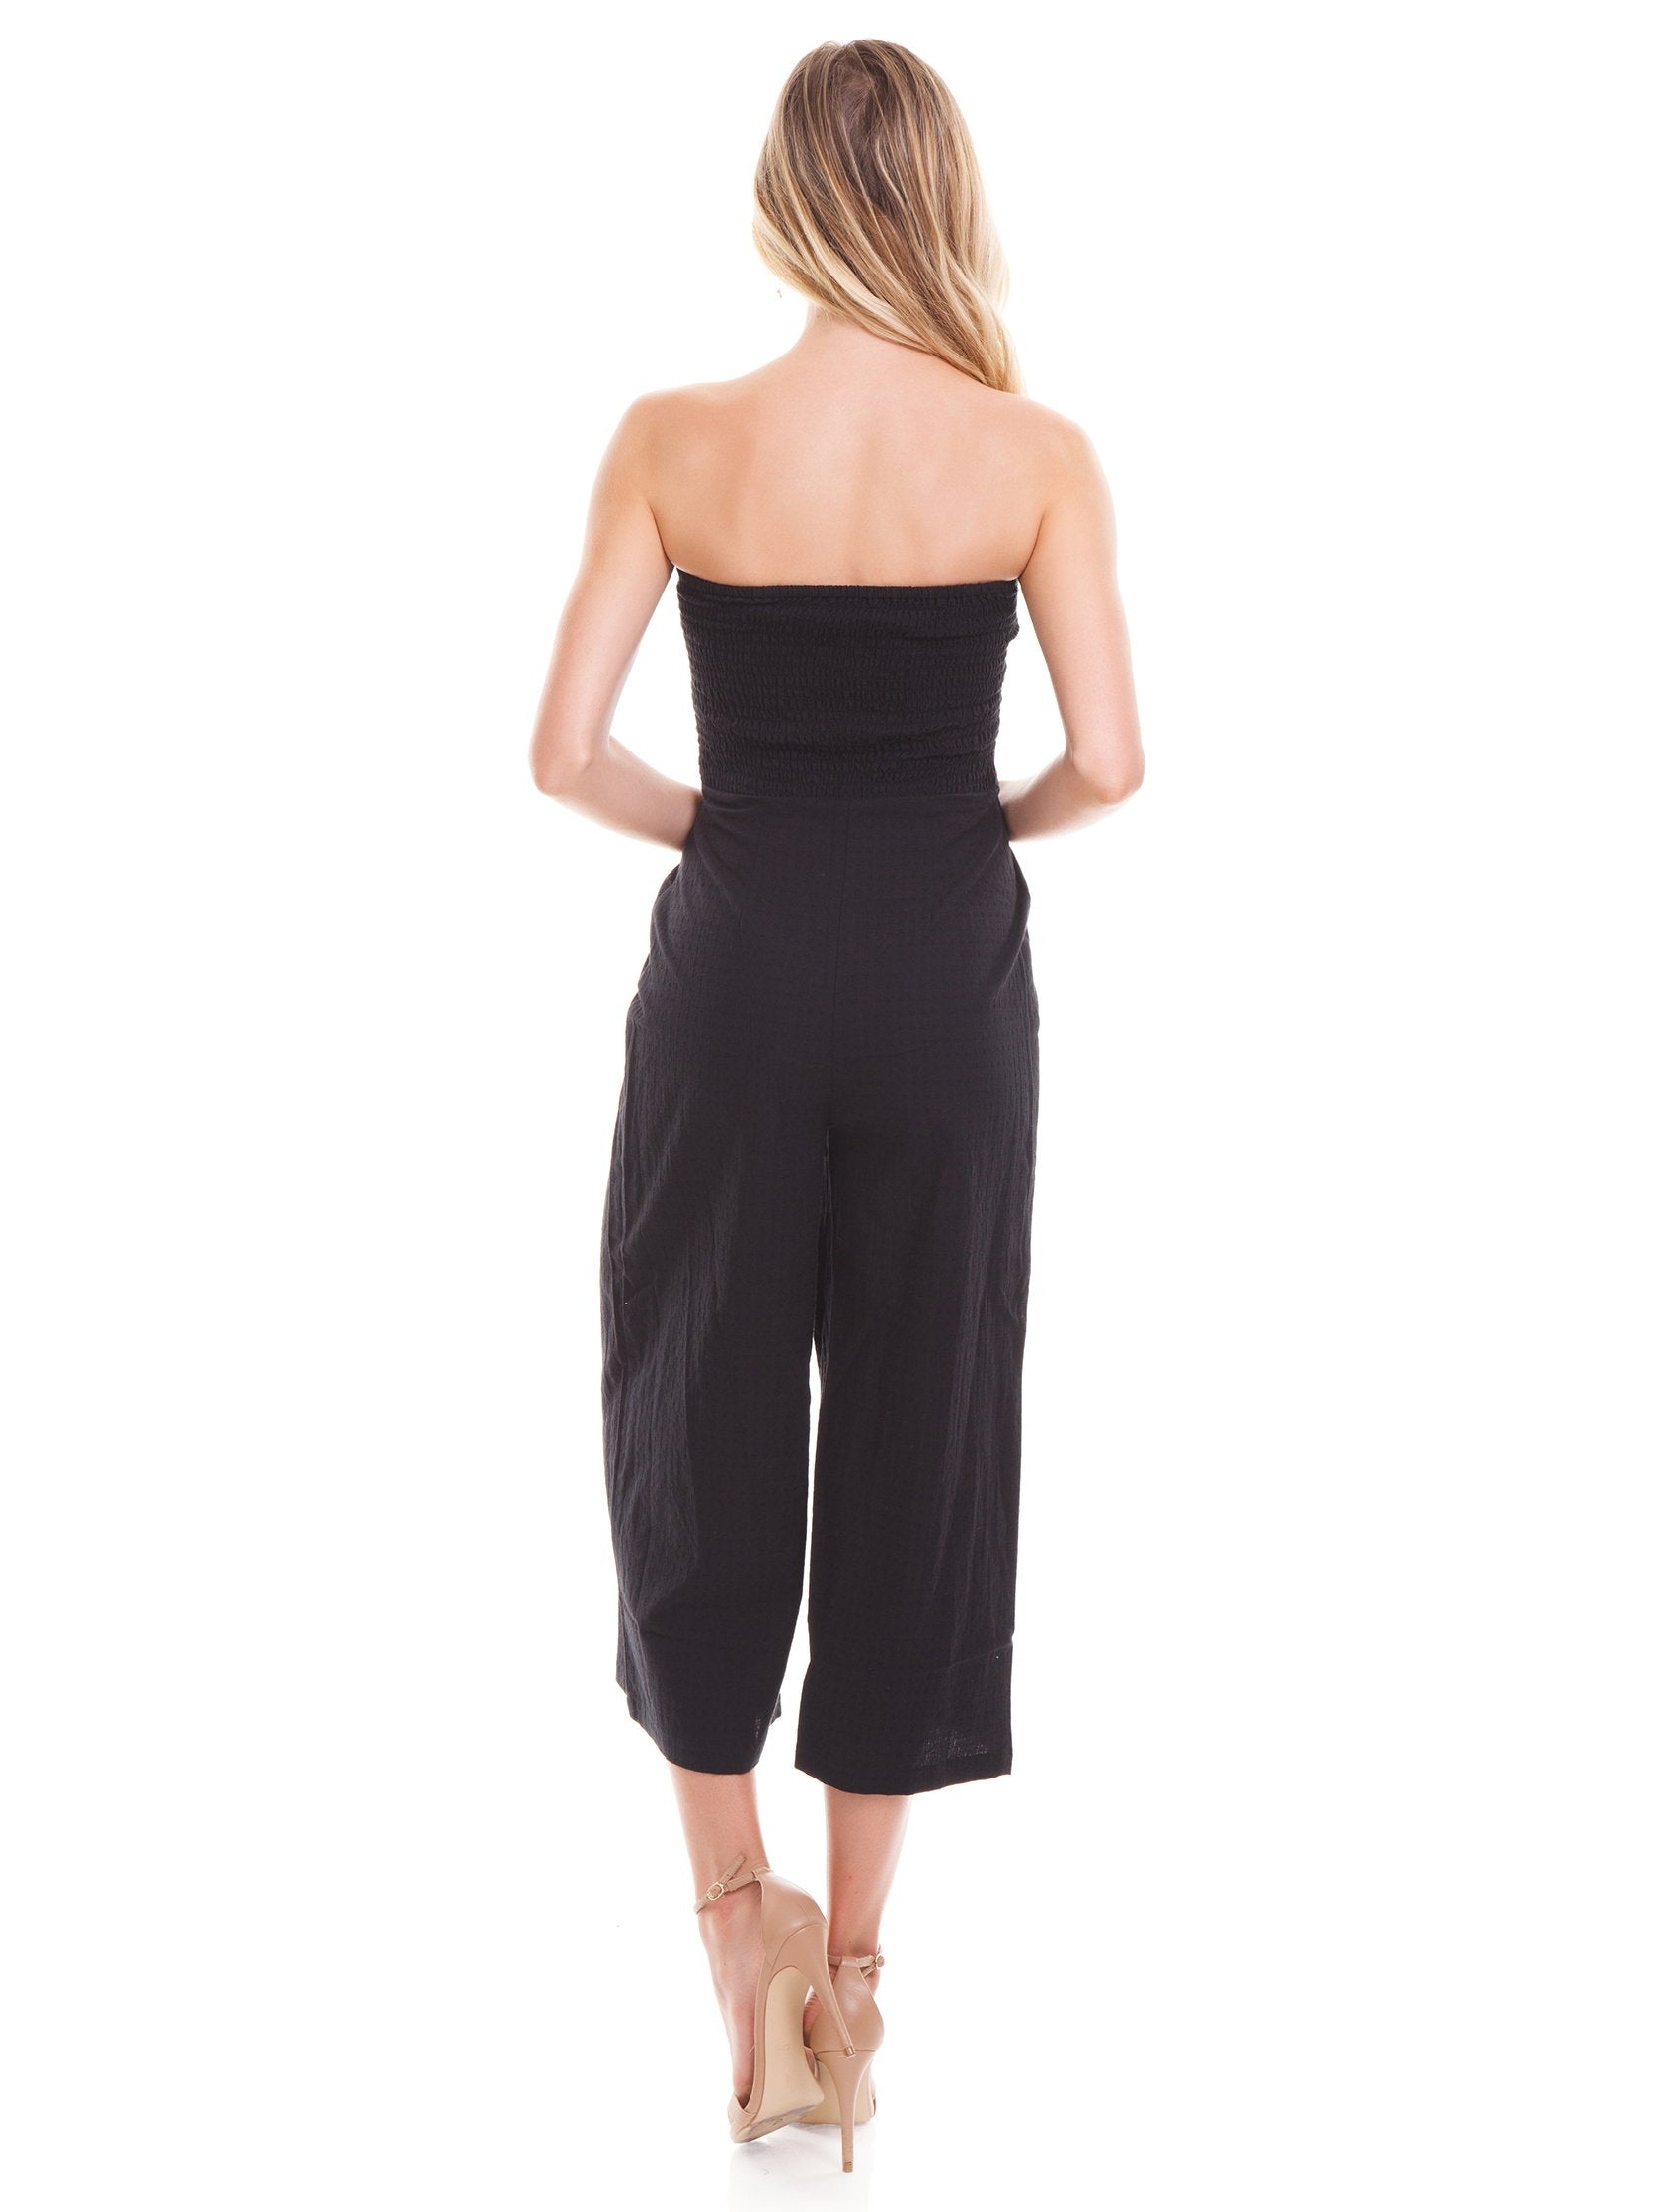 Women wearing a jumpsuit rental from MINKPINK called Say It Right Strapless Jumpsuit